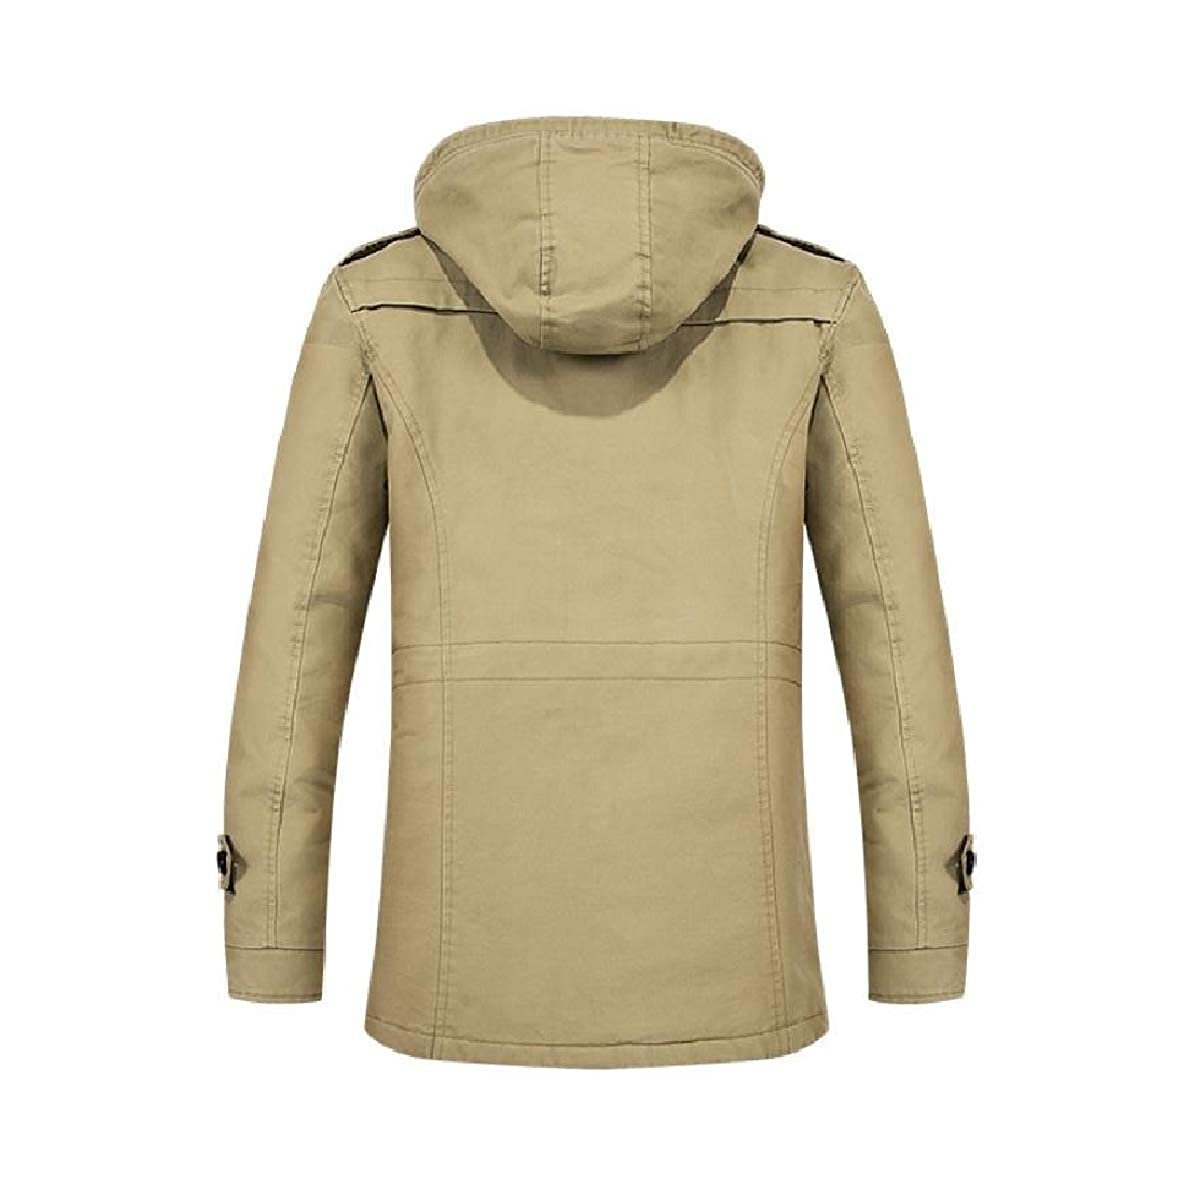 YUNY Mens Warm Cotton Detachable Hood Fleece Coat Anorak Jackets Khaki L